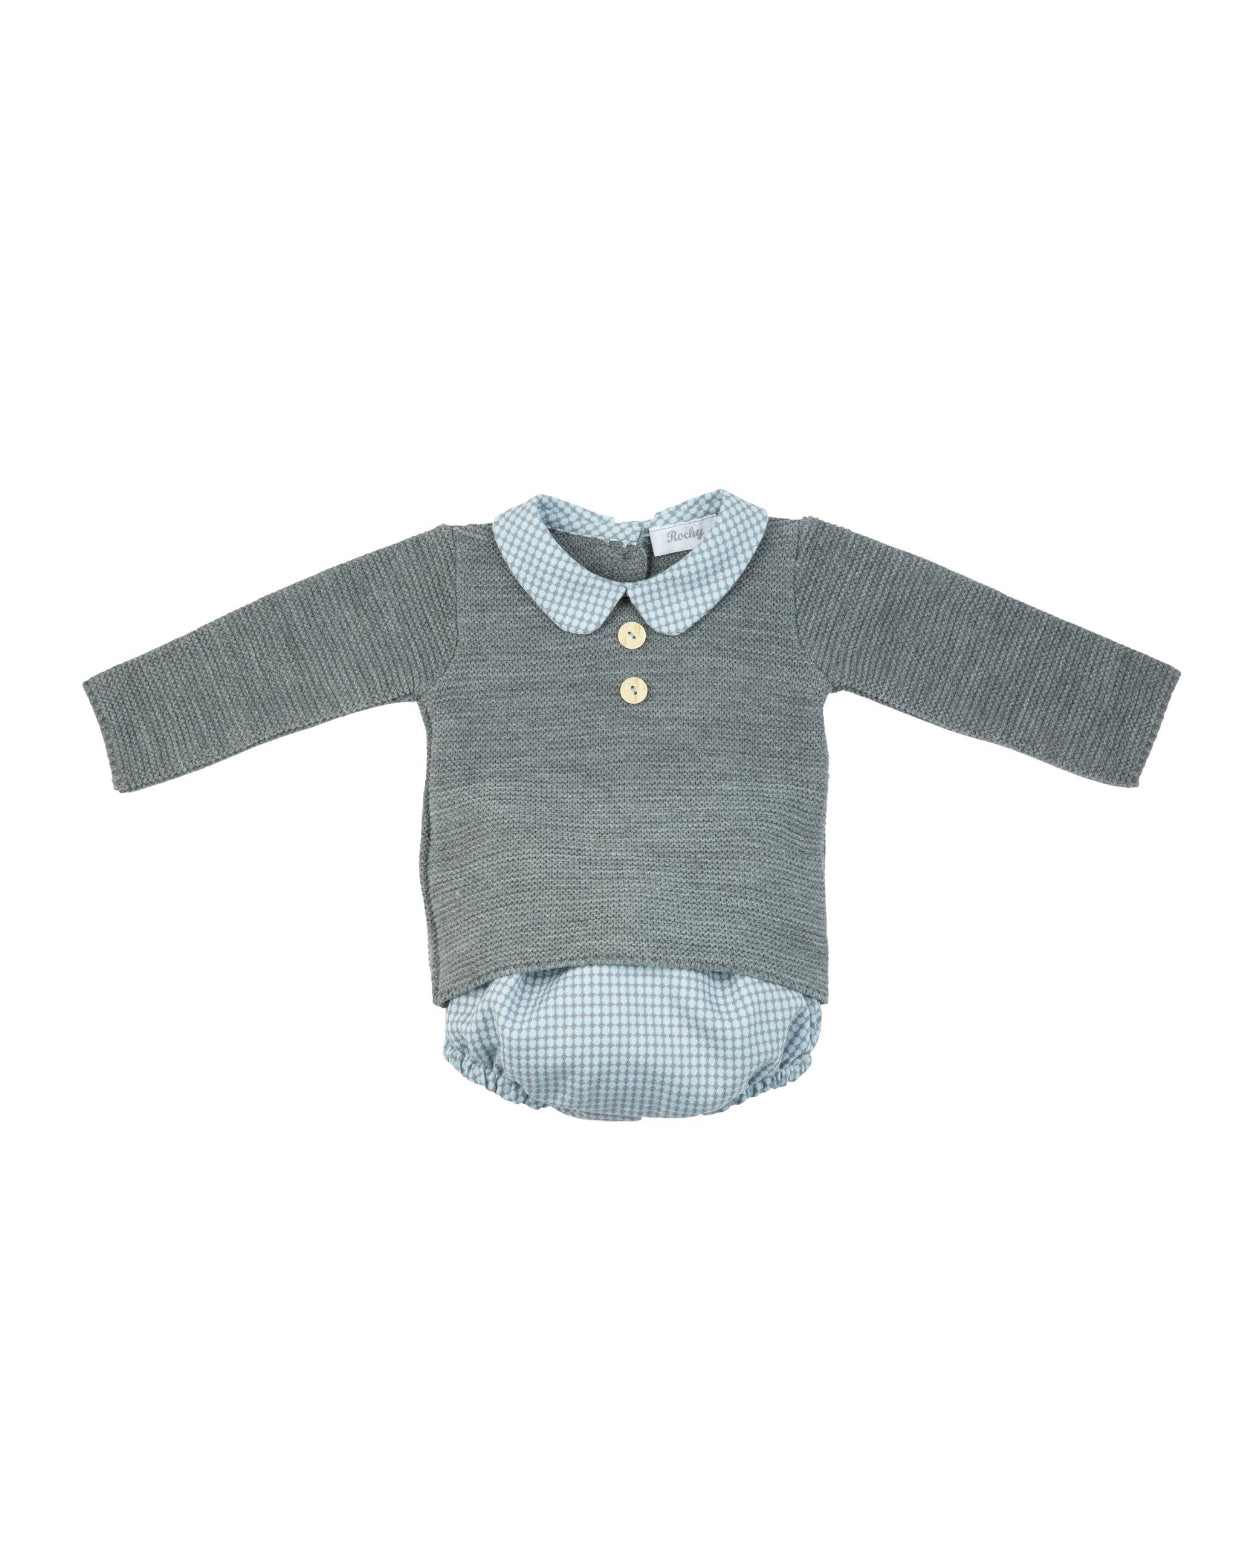 Rochy AW 20/21 Beautiful boys 2 piece set